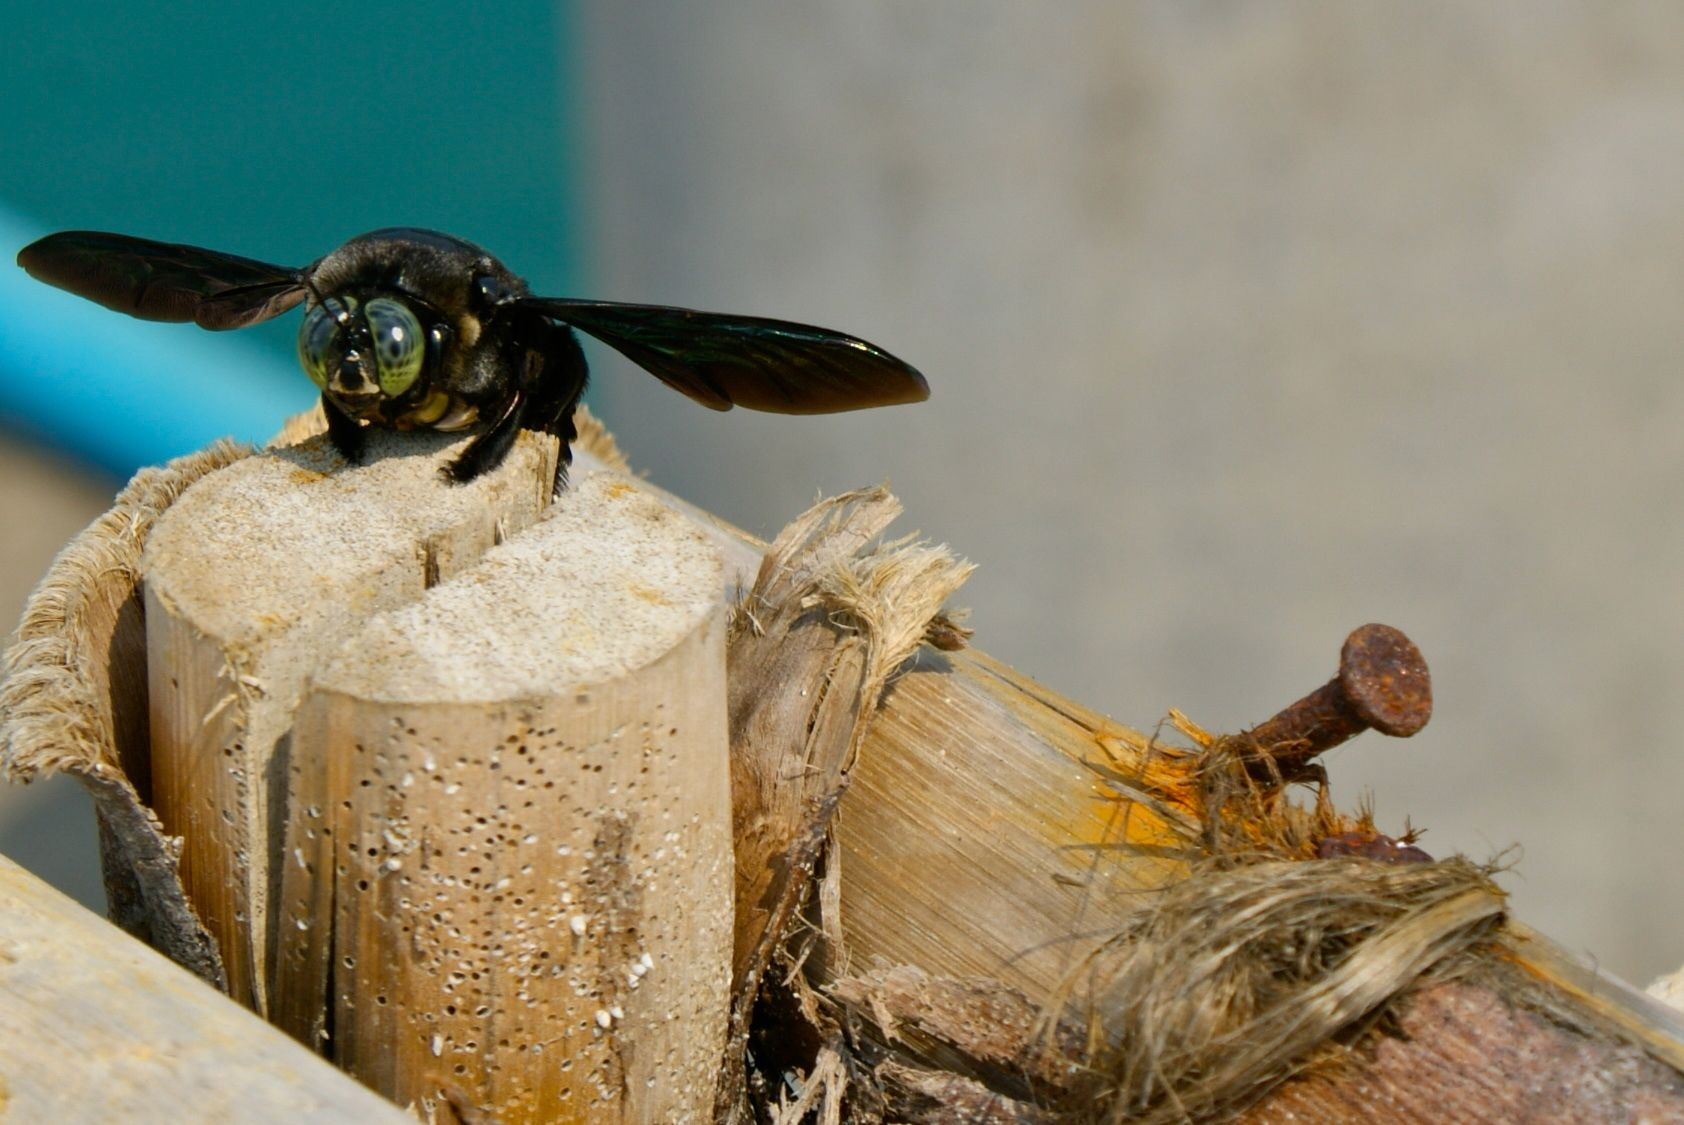 Habits And Traits Of Carpenter Bees